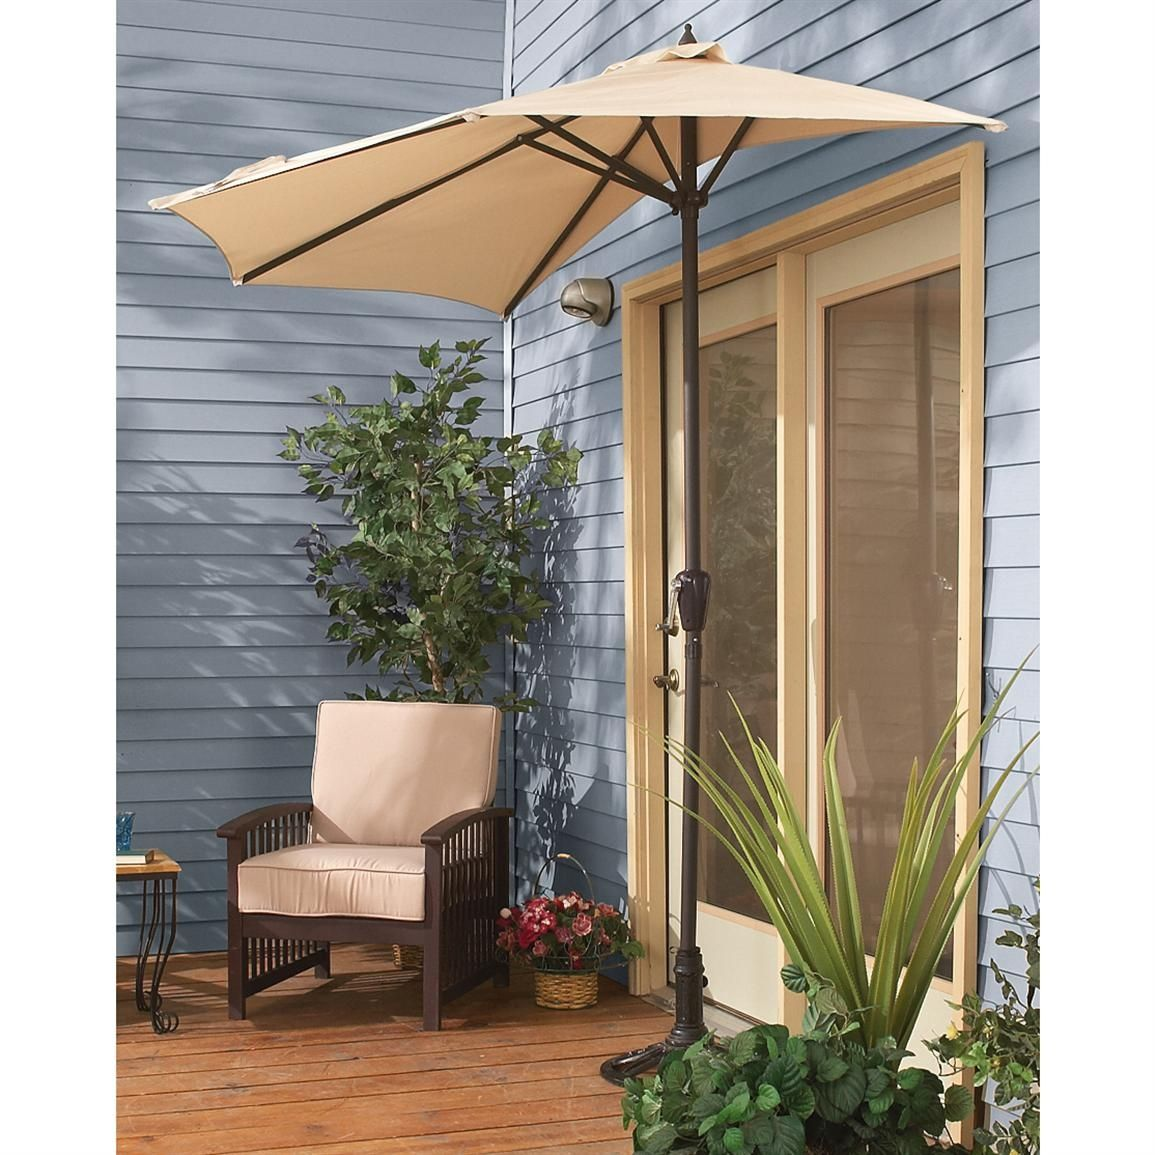 solar deck size unique parts inside for umbrellas half greatest lowes red of stand patio pool best outdoor hanging large base market offset umbrella